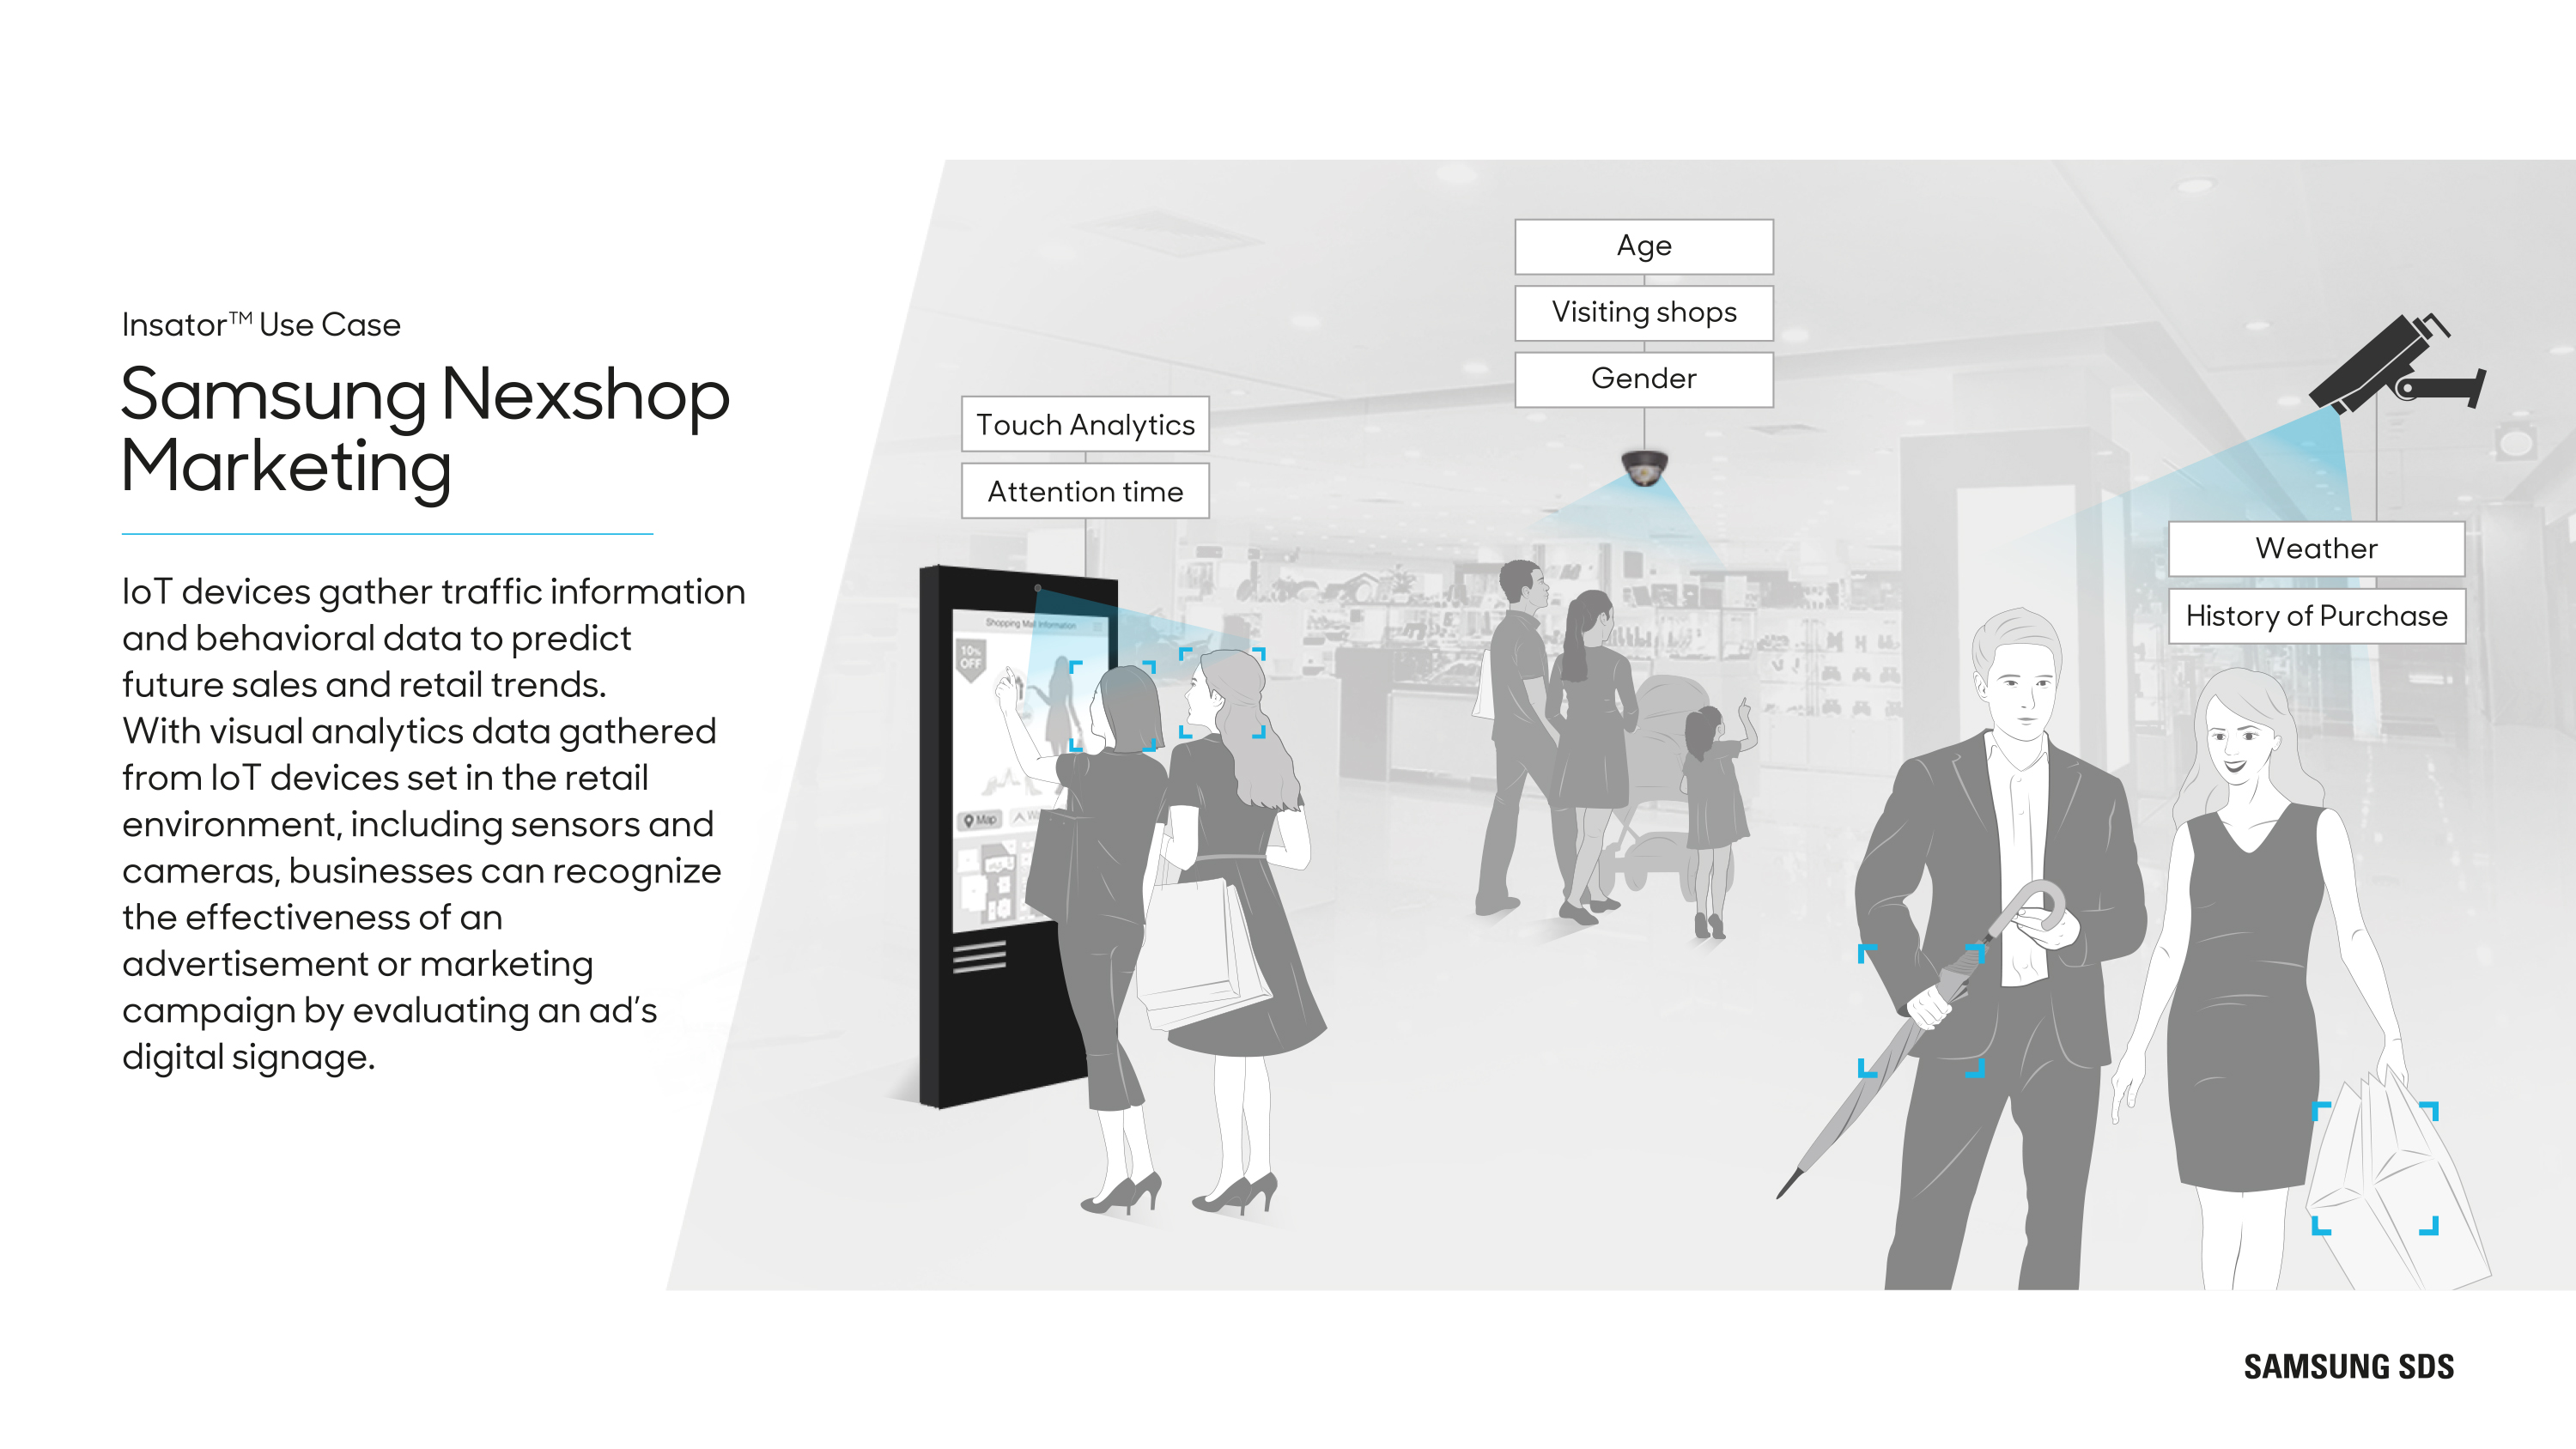 Samsung Nexshop Marketing IoT devices gather traffic information and behavioral data to predict future sales and retail trends. With visual analytics data gathered from IoT devices set in the retail environment, including sensors and cameras, businesses can recognize the effectiveness of an advertisement or marketing campaign by evaluating an ad's digital signage.